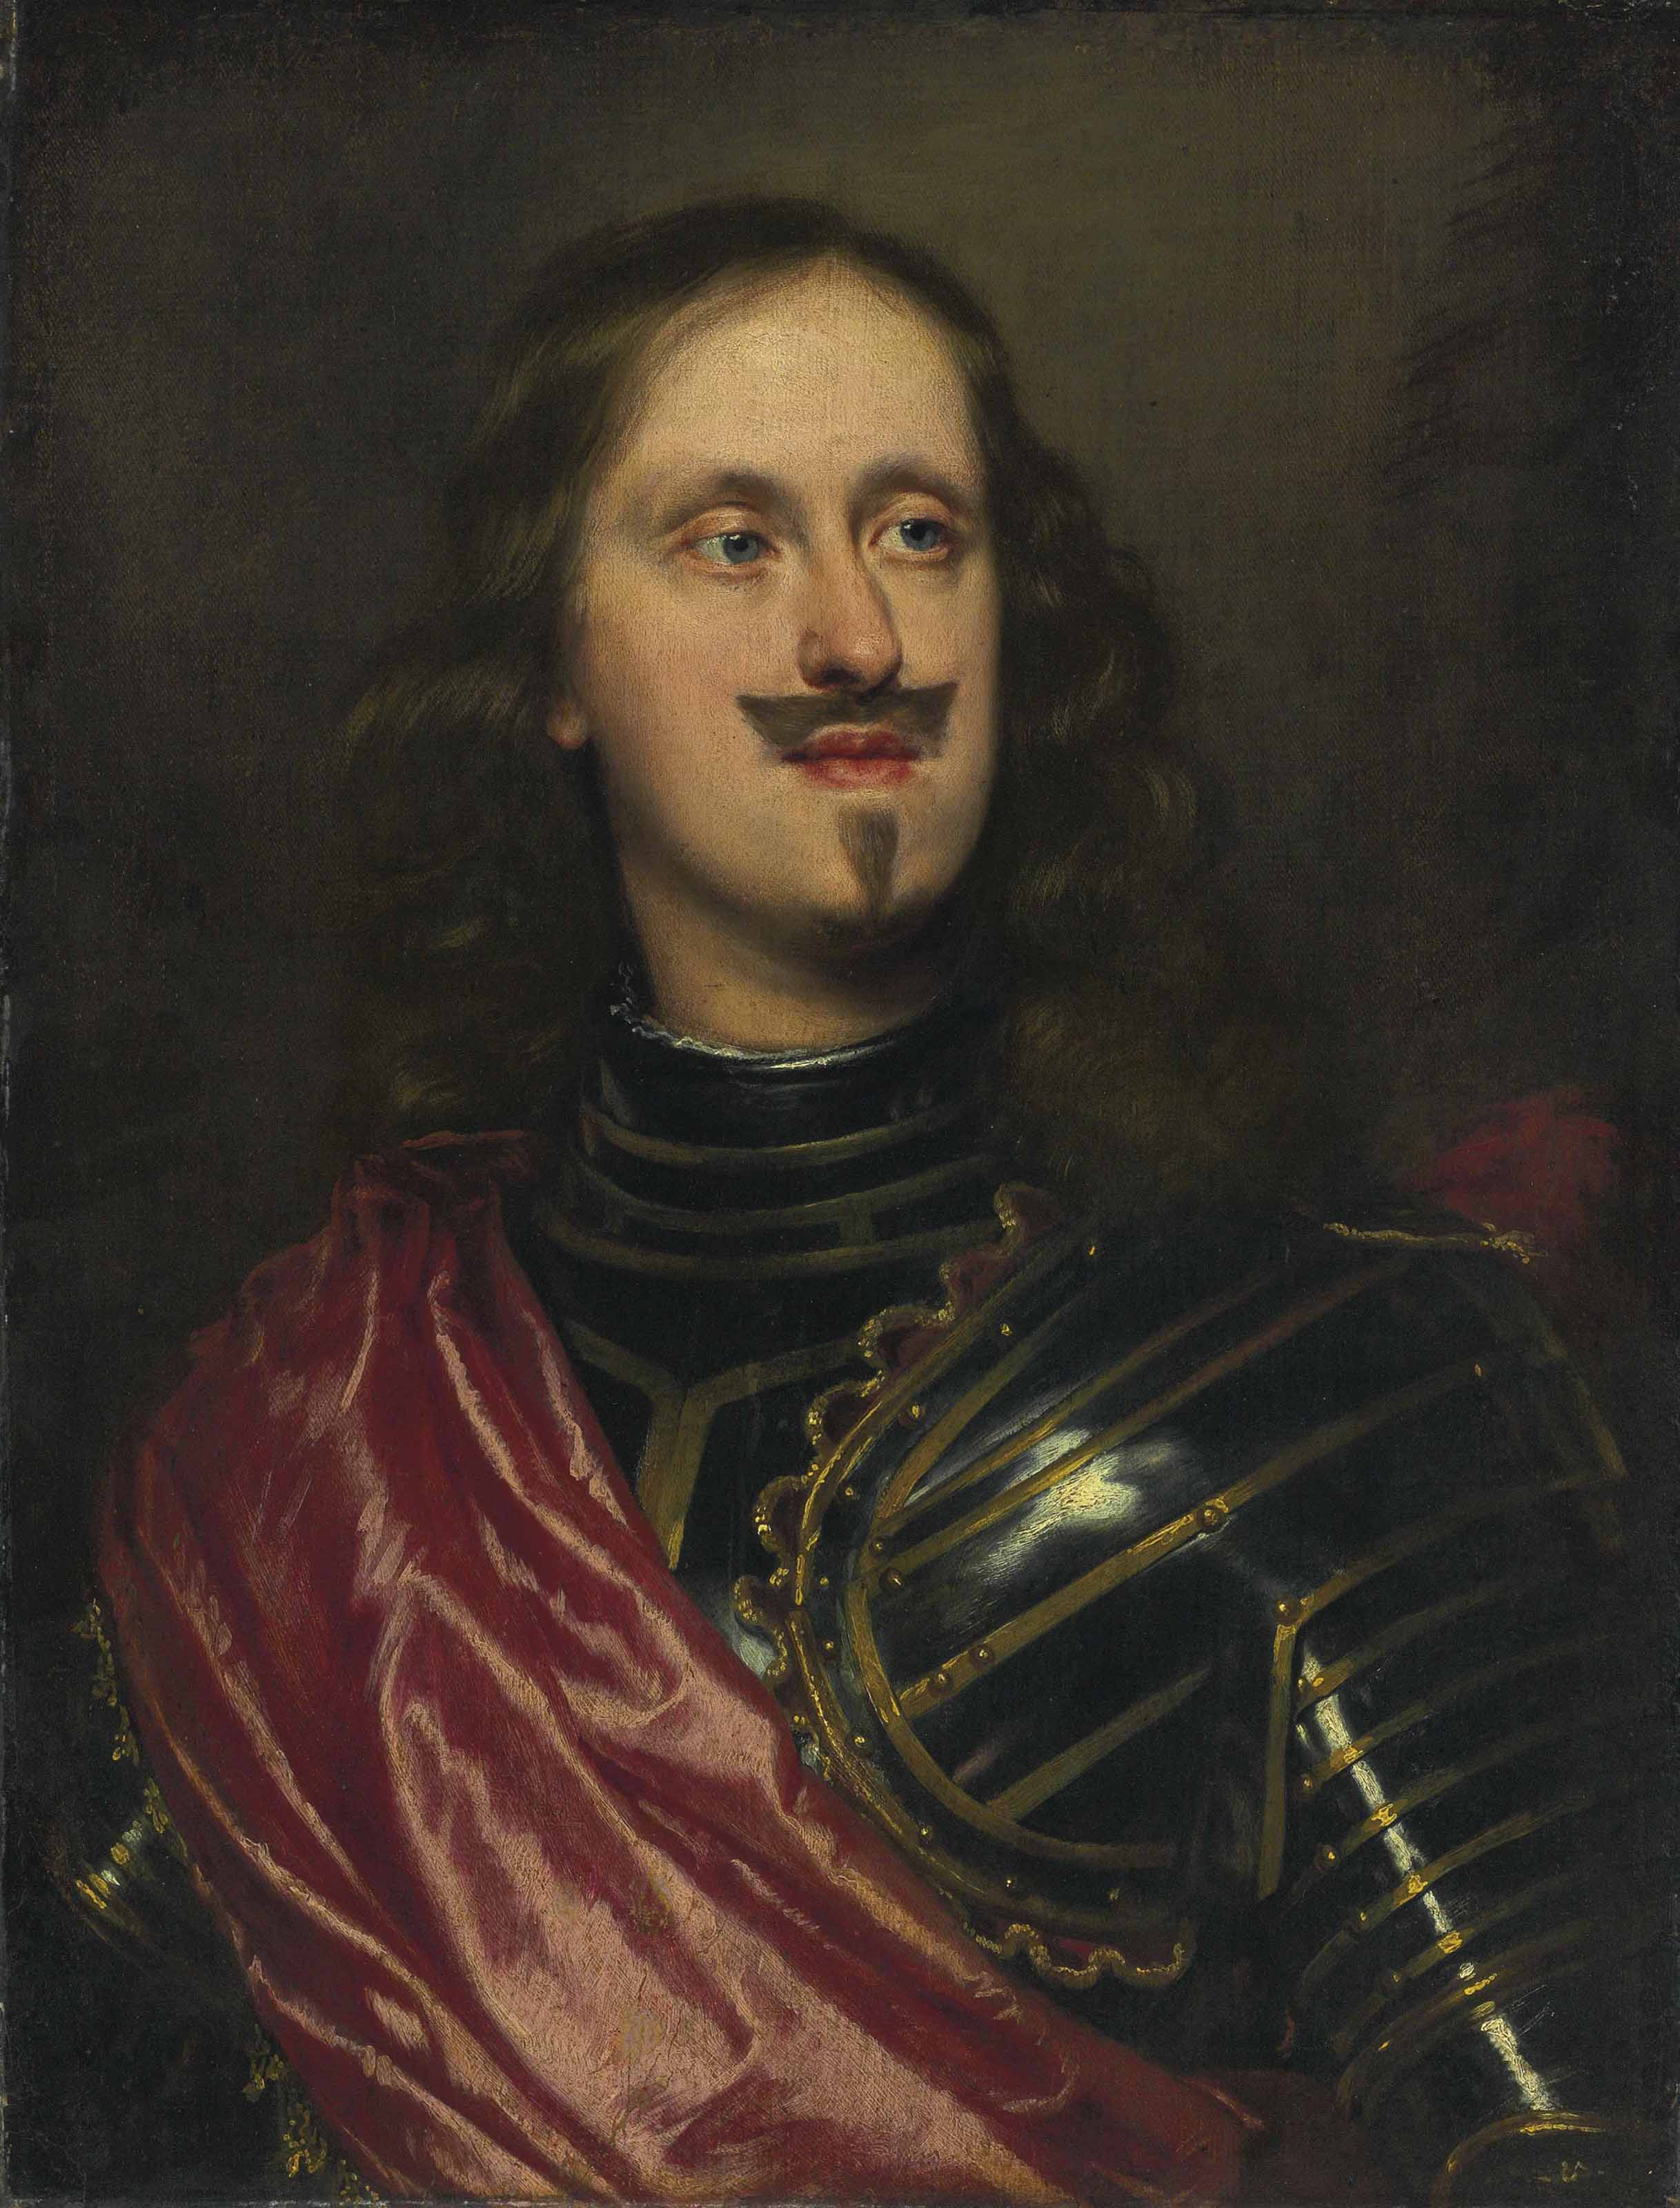 Giovan Carlo di Cosimo II de Medici (1611-1663), in armor and a red sash, bust-length